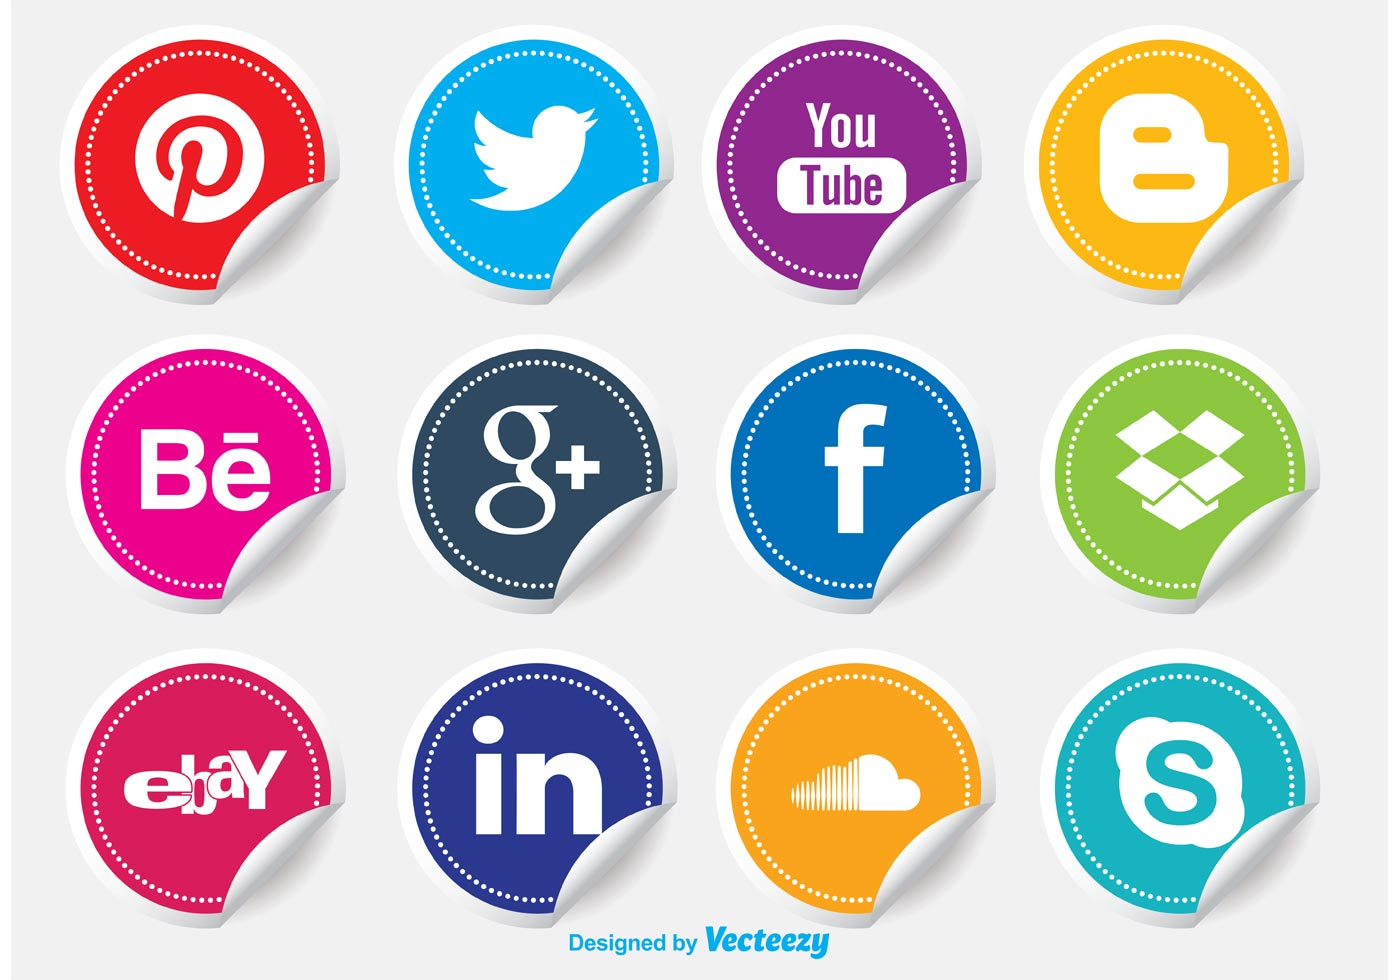 vector-social-media-icon-stickers.jpg